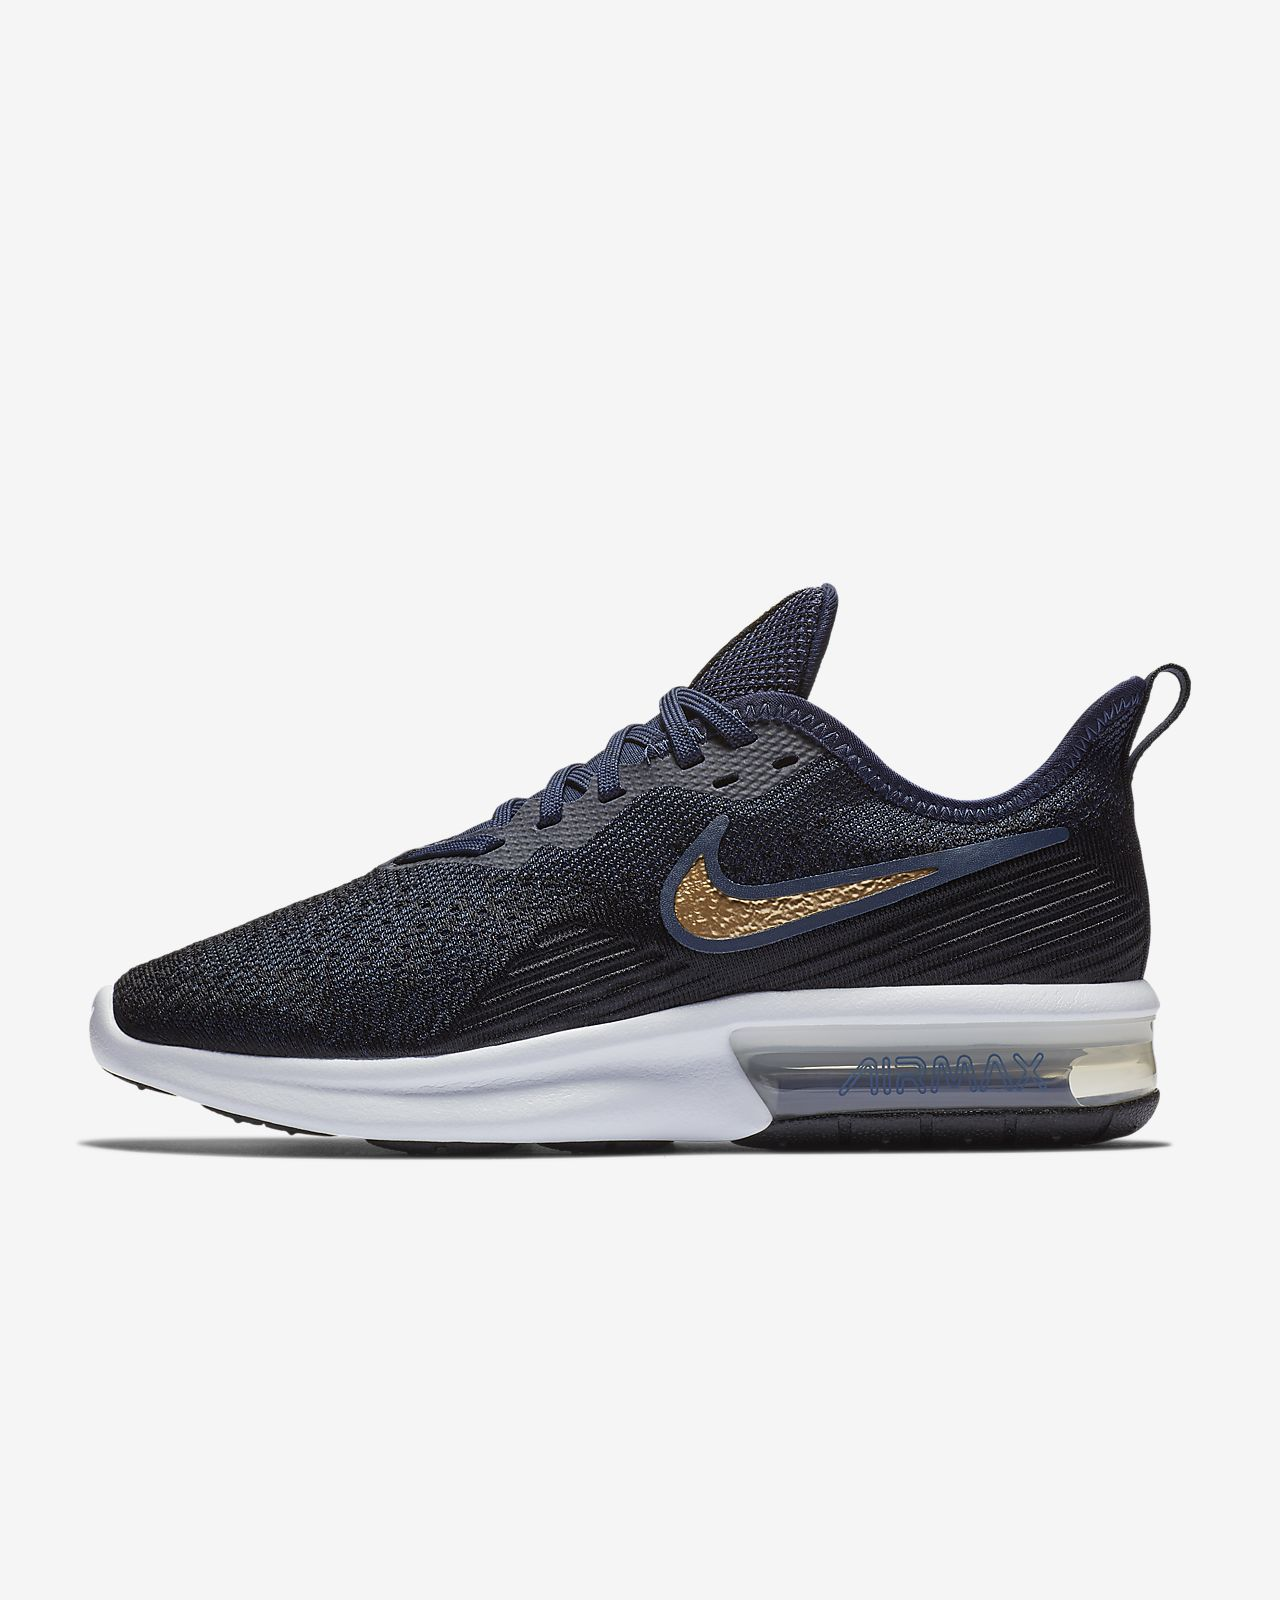 Nike Air Max Sequent 4 Women's Shoe